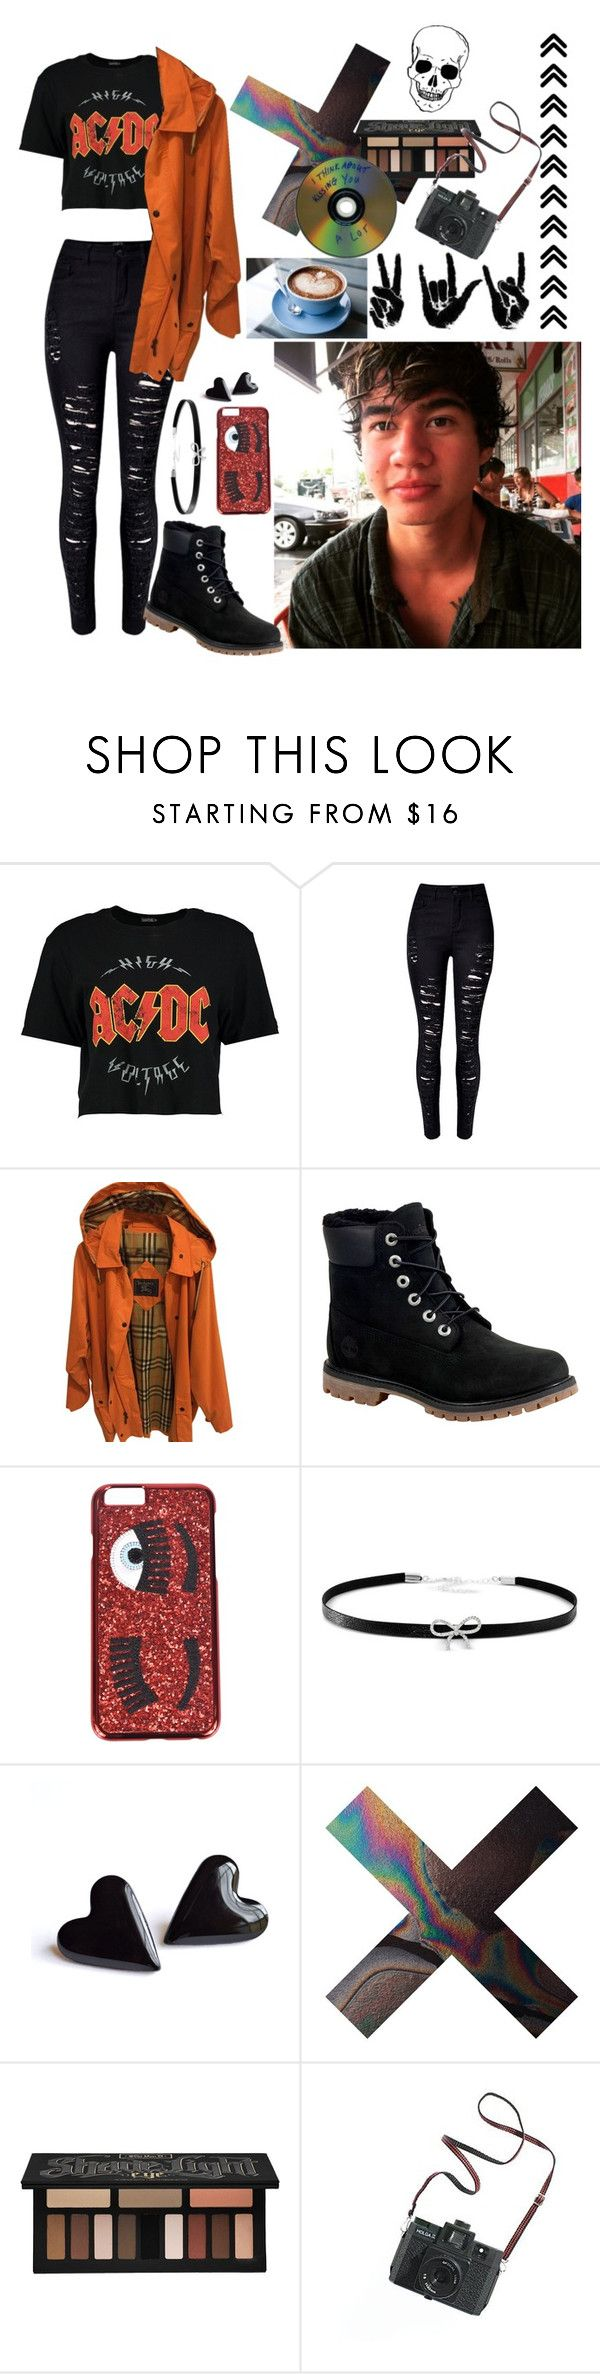 """""""Rainy Coffee Date with Cal"""" by avery-walpole ❤ liked on Polyvore featuring Boohoo, WithChic, Burberry, Timberland, Chiara Ferragni, Giani Bernini, Kat Von D and Madewell"""